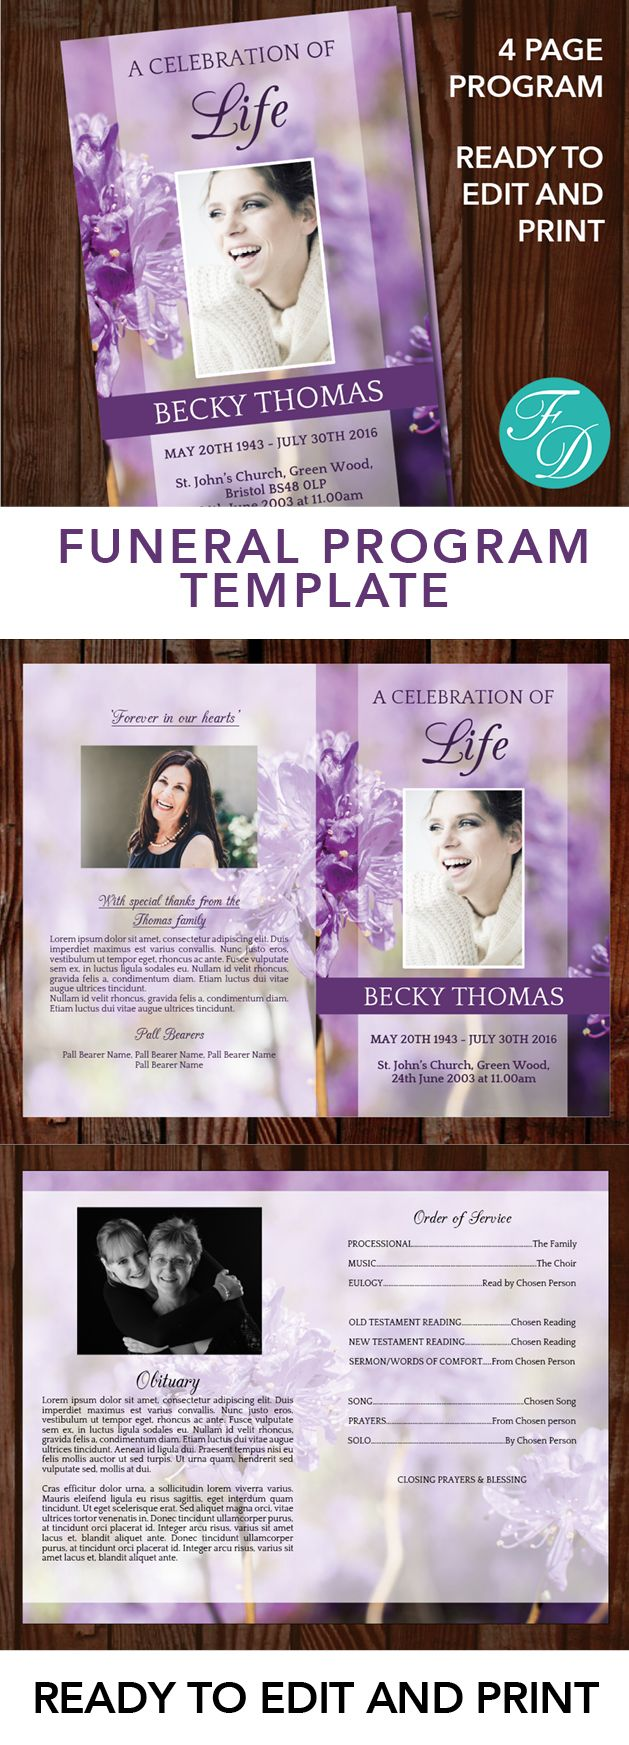 Purple flowers Printable Funeral program ready to edit & print. Simply purchase your funeral templates, download, edit with Microsoft Word and print. #obituarytemplate #memorialprogram #funeralprograms #funeraltemplate #printableprogram #celebrationoflife #funeralprogamtemplates